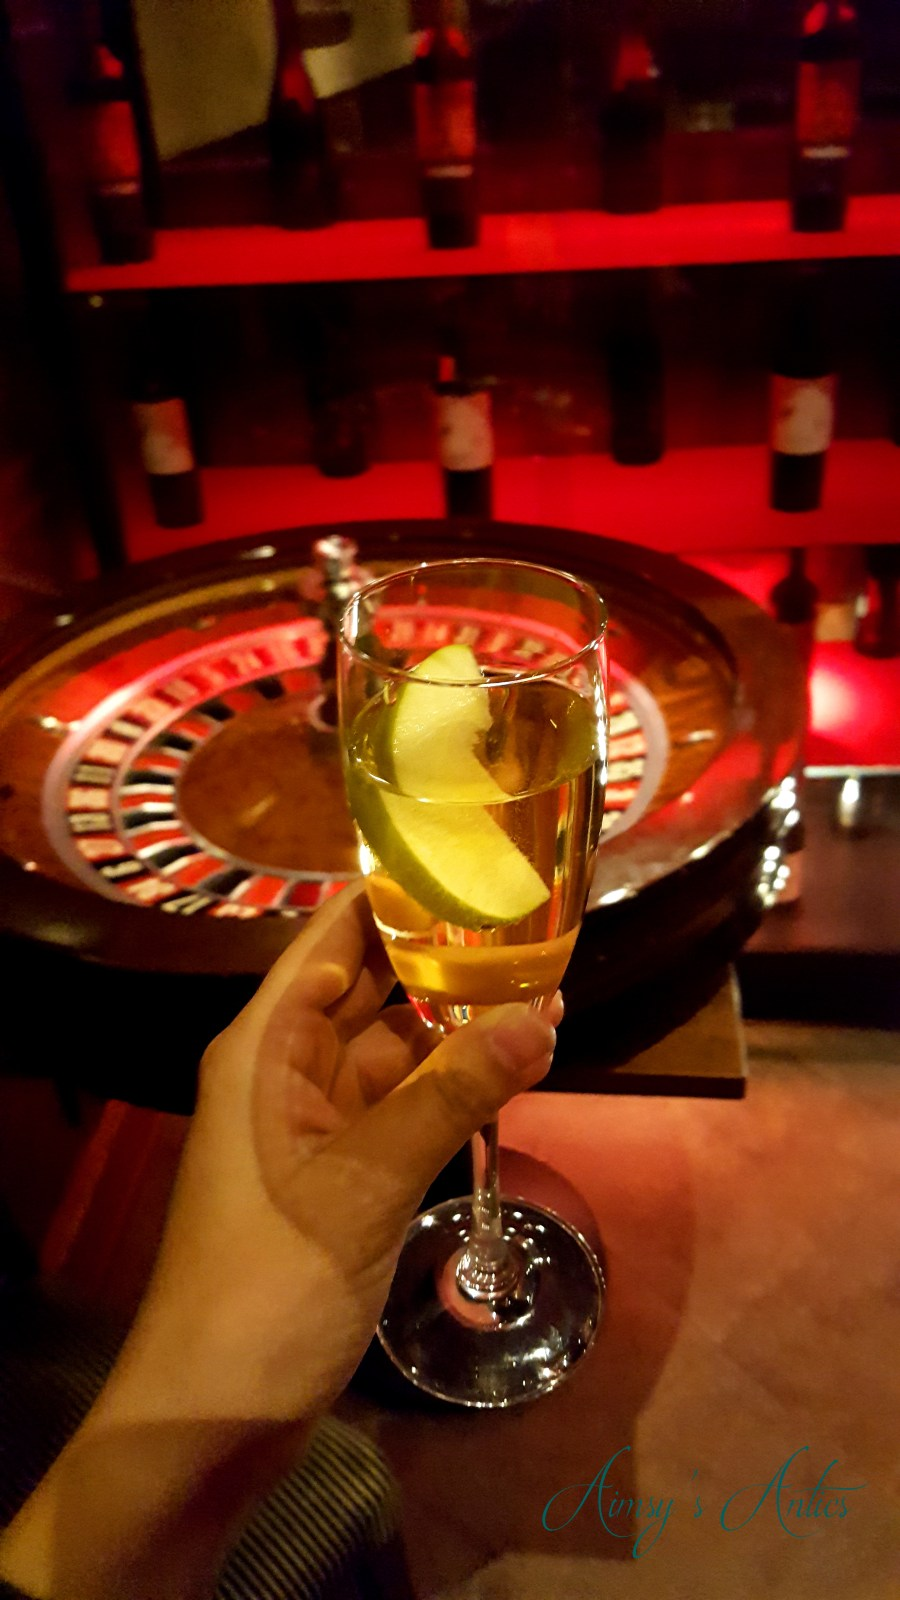 hand holding a champagne flute with a cider and gin cocktail in fruit of a roulette wheel